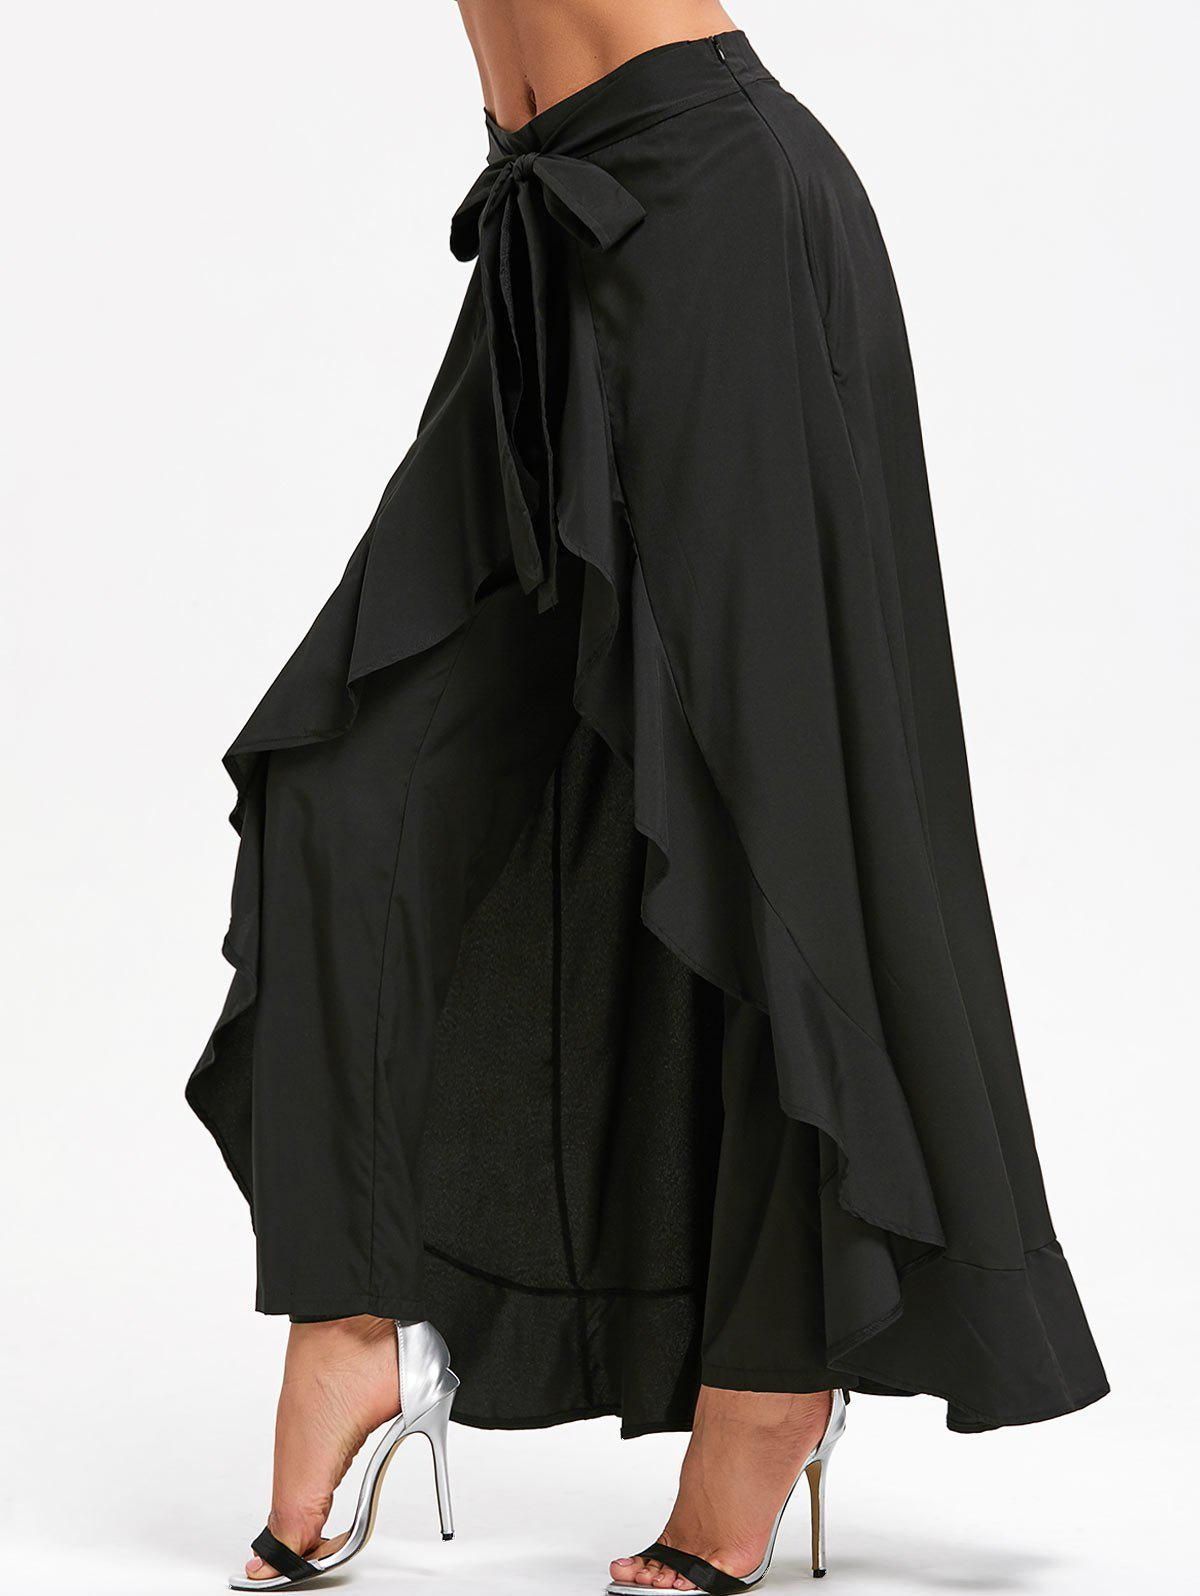 Tie Front Ruffle Skirted Pants - BLACK M